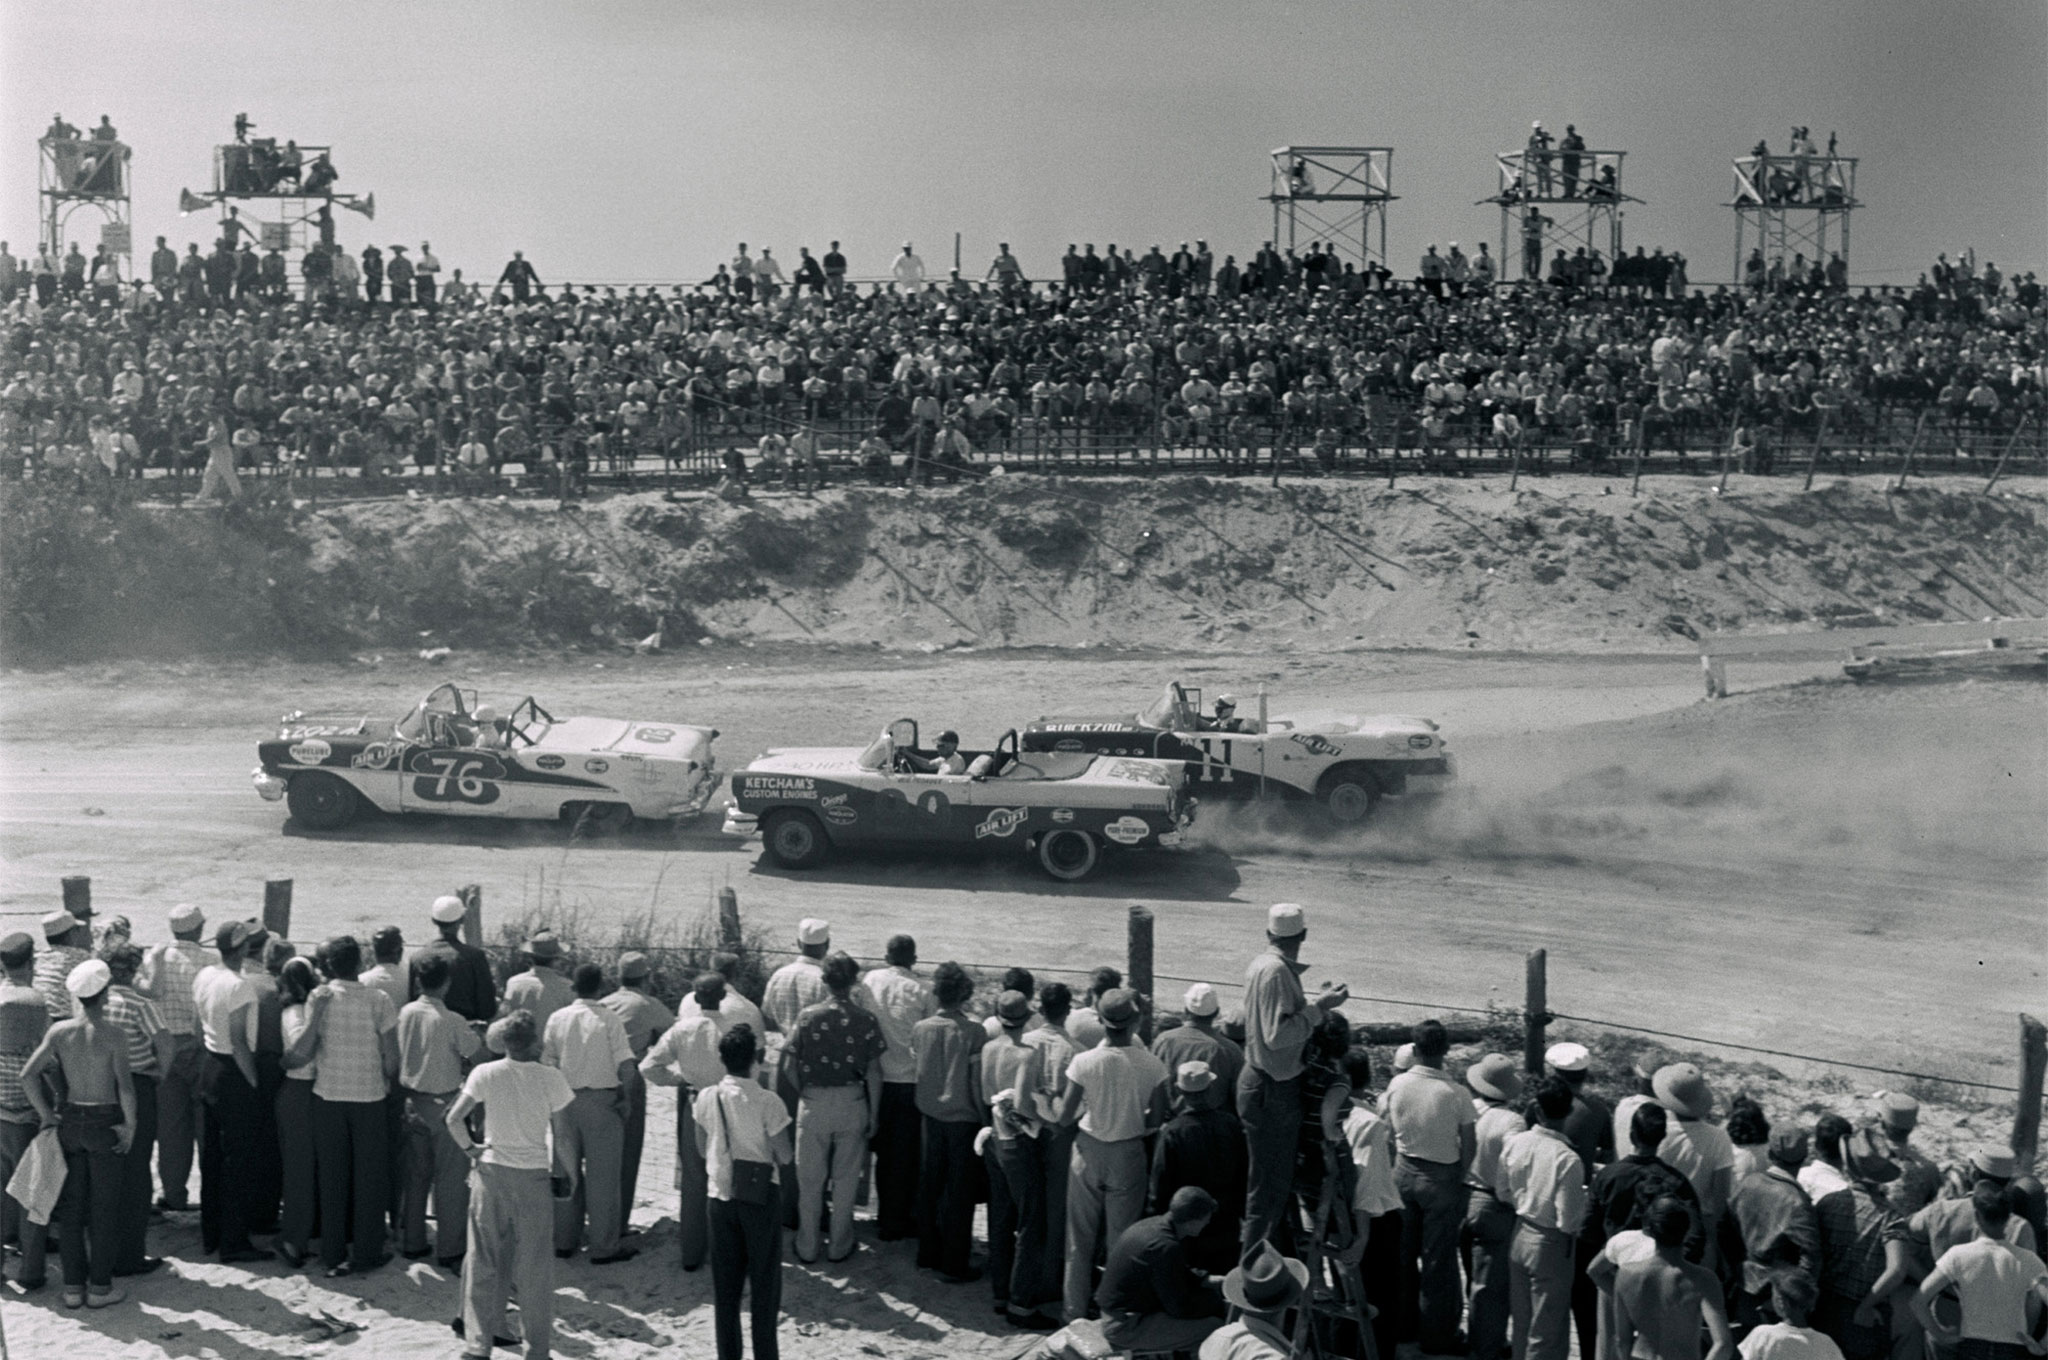 The debut of NASCAR's Convertible division produced an entertaining variety of 28 models, as illustrated by this tight trio of (from left) Larry Frank ('55 Olds), Gene Blair ('55 Merc), and George Bumgardner ('54 Buick). Ragtops ran the same 4.1-mile course and 160-mile distance as the Grand National hardtops. Joe Weatherly set the qualifying pace at 117.801, but Curtis Turner averaged 96.052 and edged Fireball Roberts in a one-two finish for Ford.